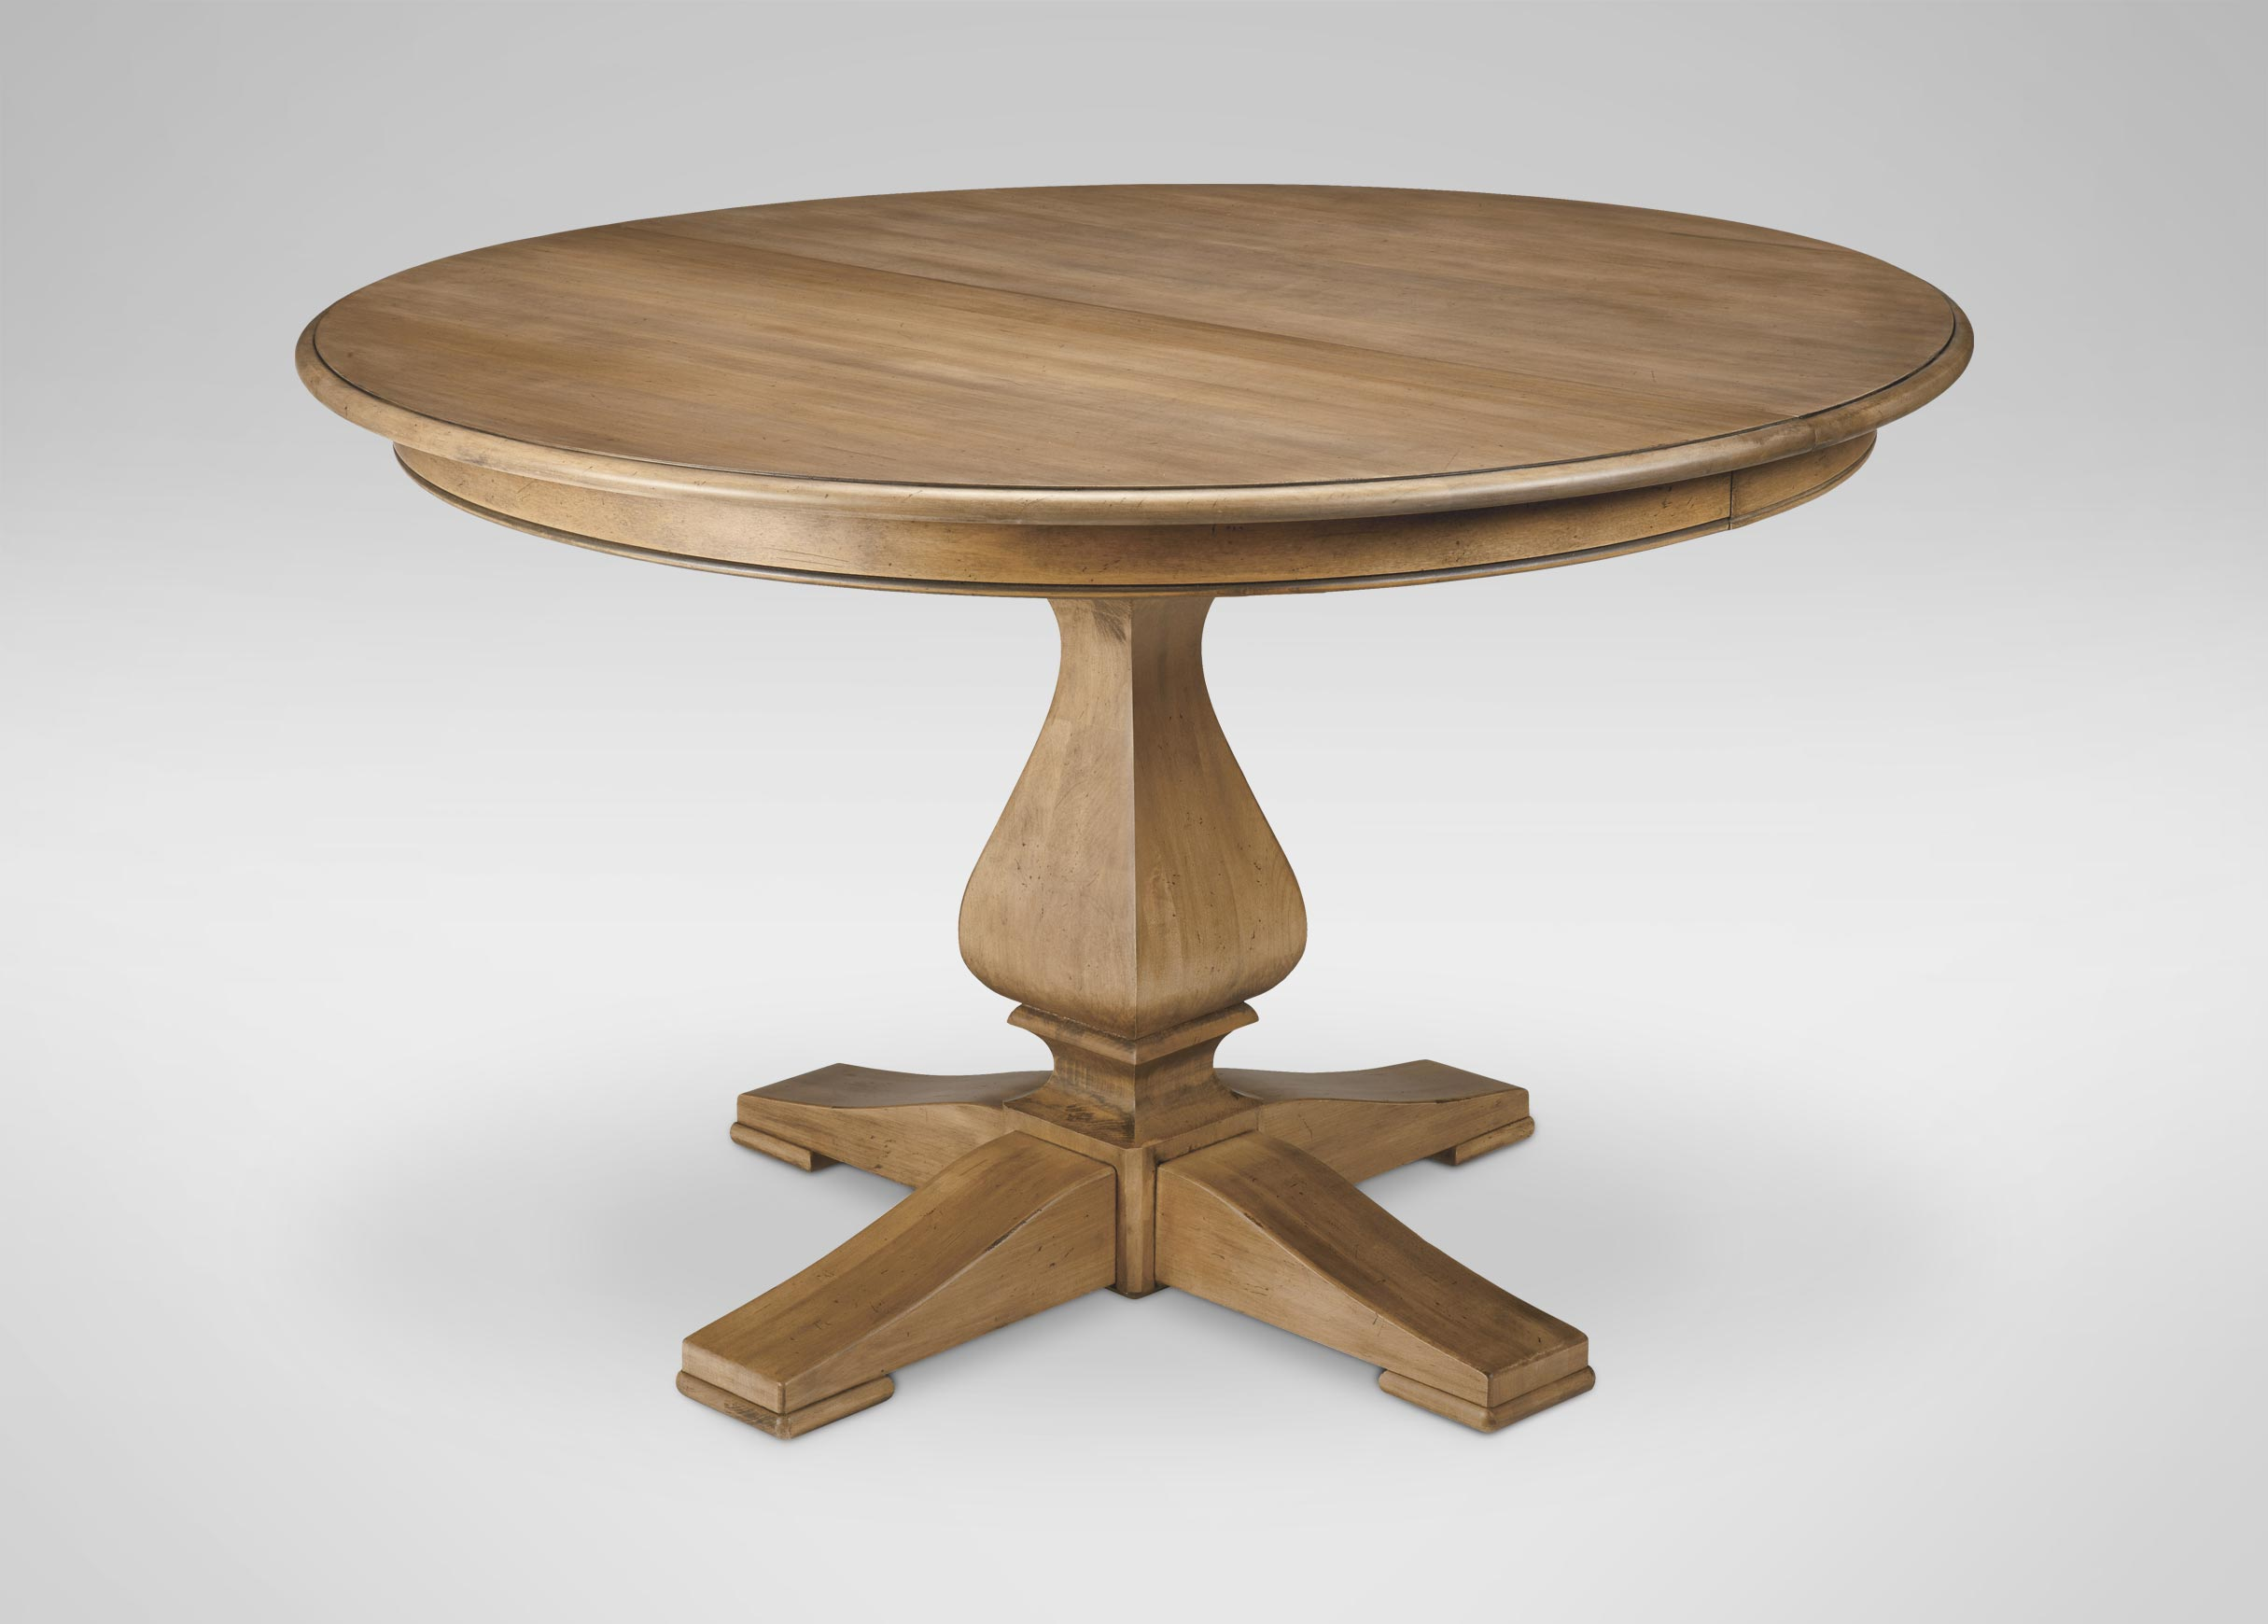 Stunning round dining tables cute round dining table cameron round dining table , , large fbhbsmx